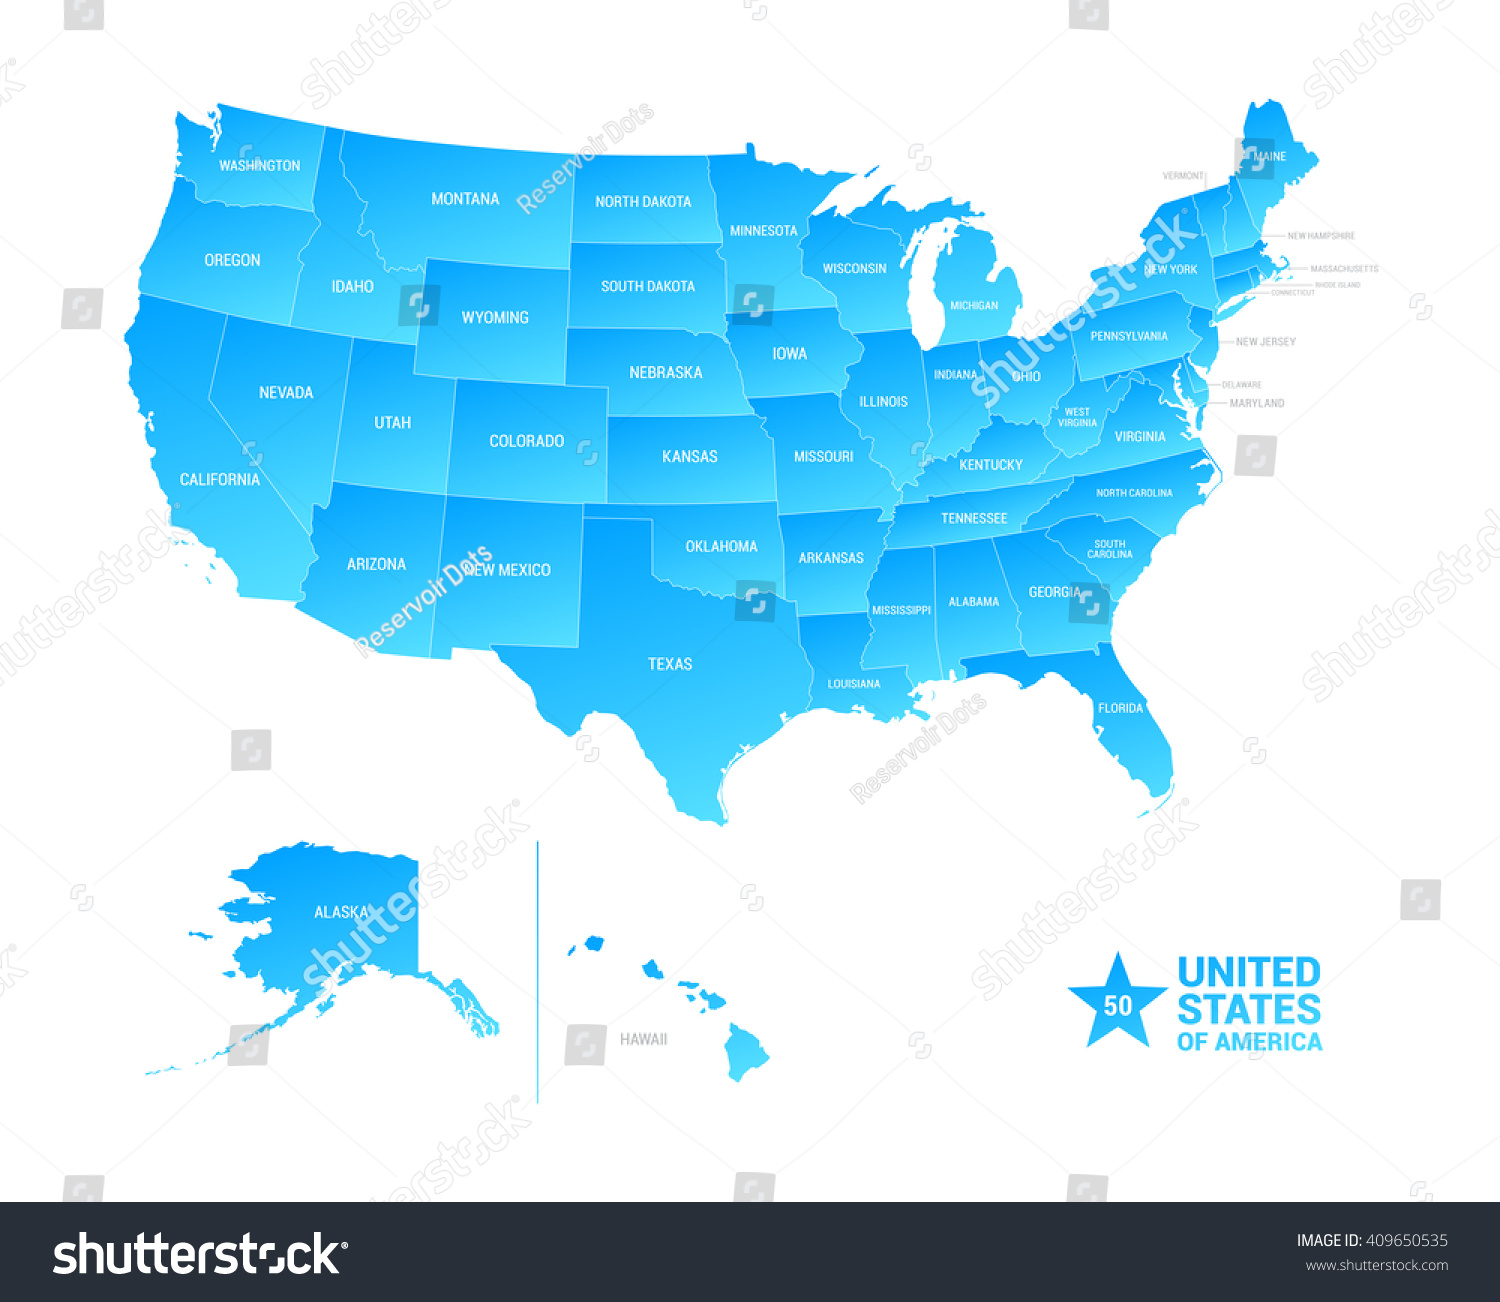 United States America Usa Vector Map Stock Vector 409650535